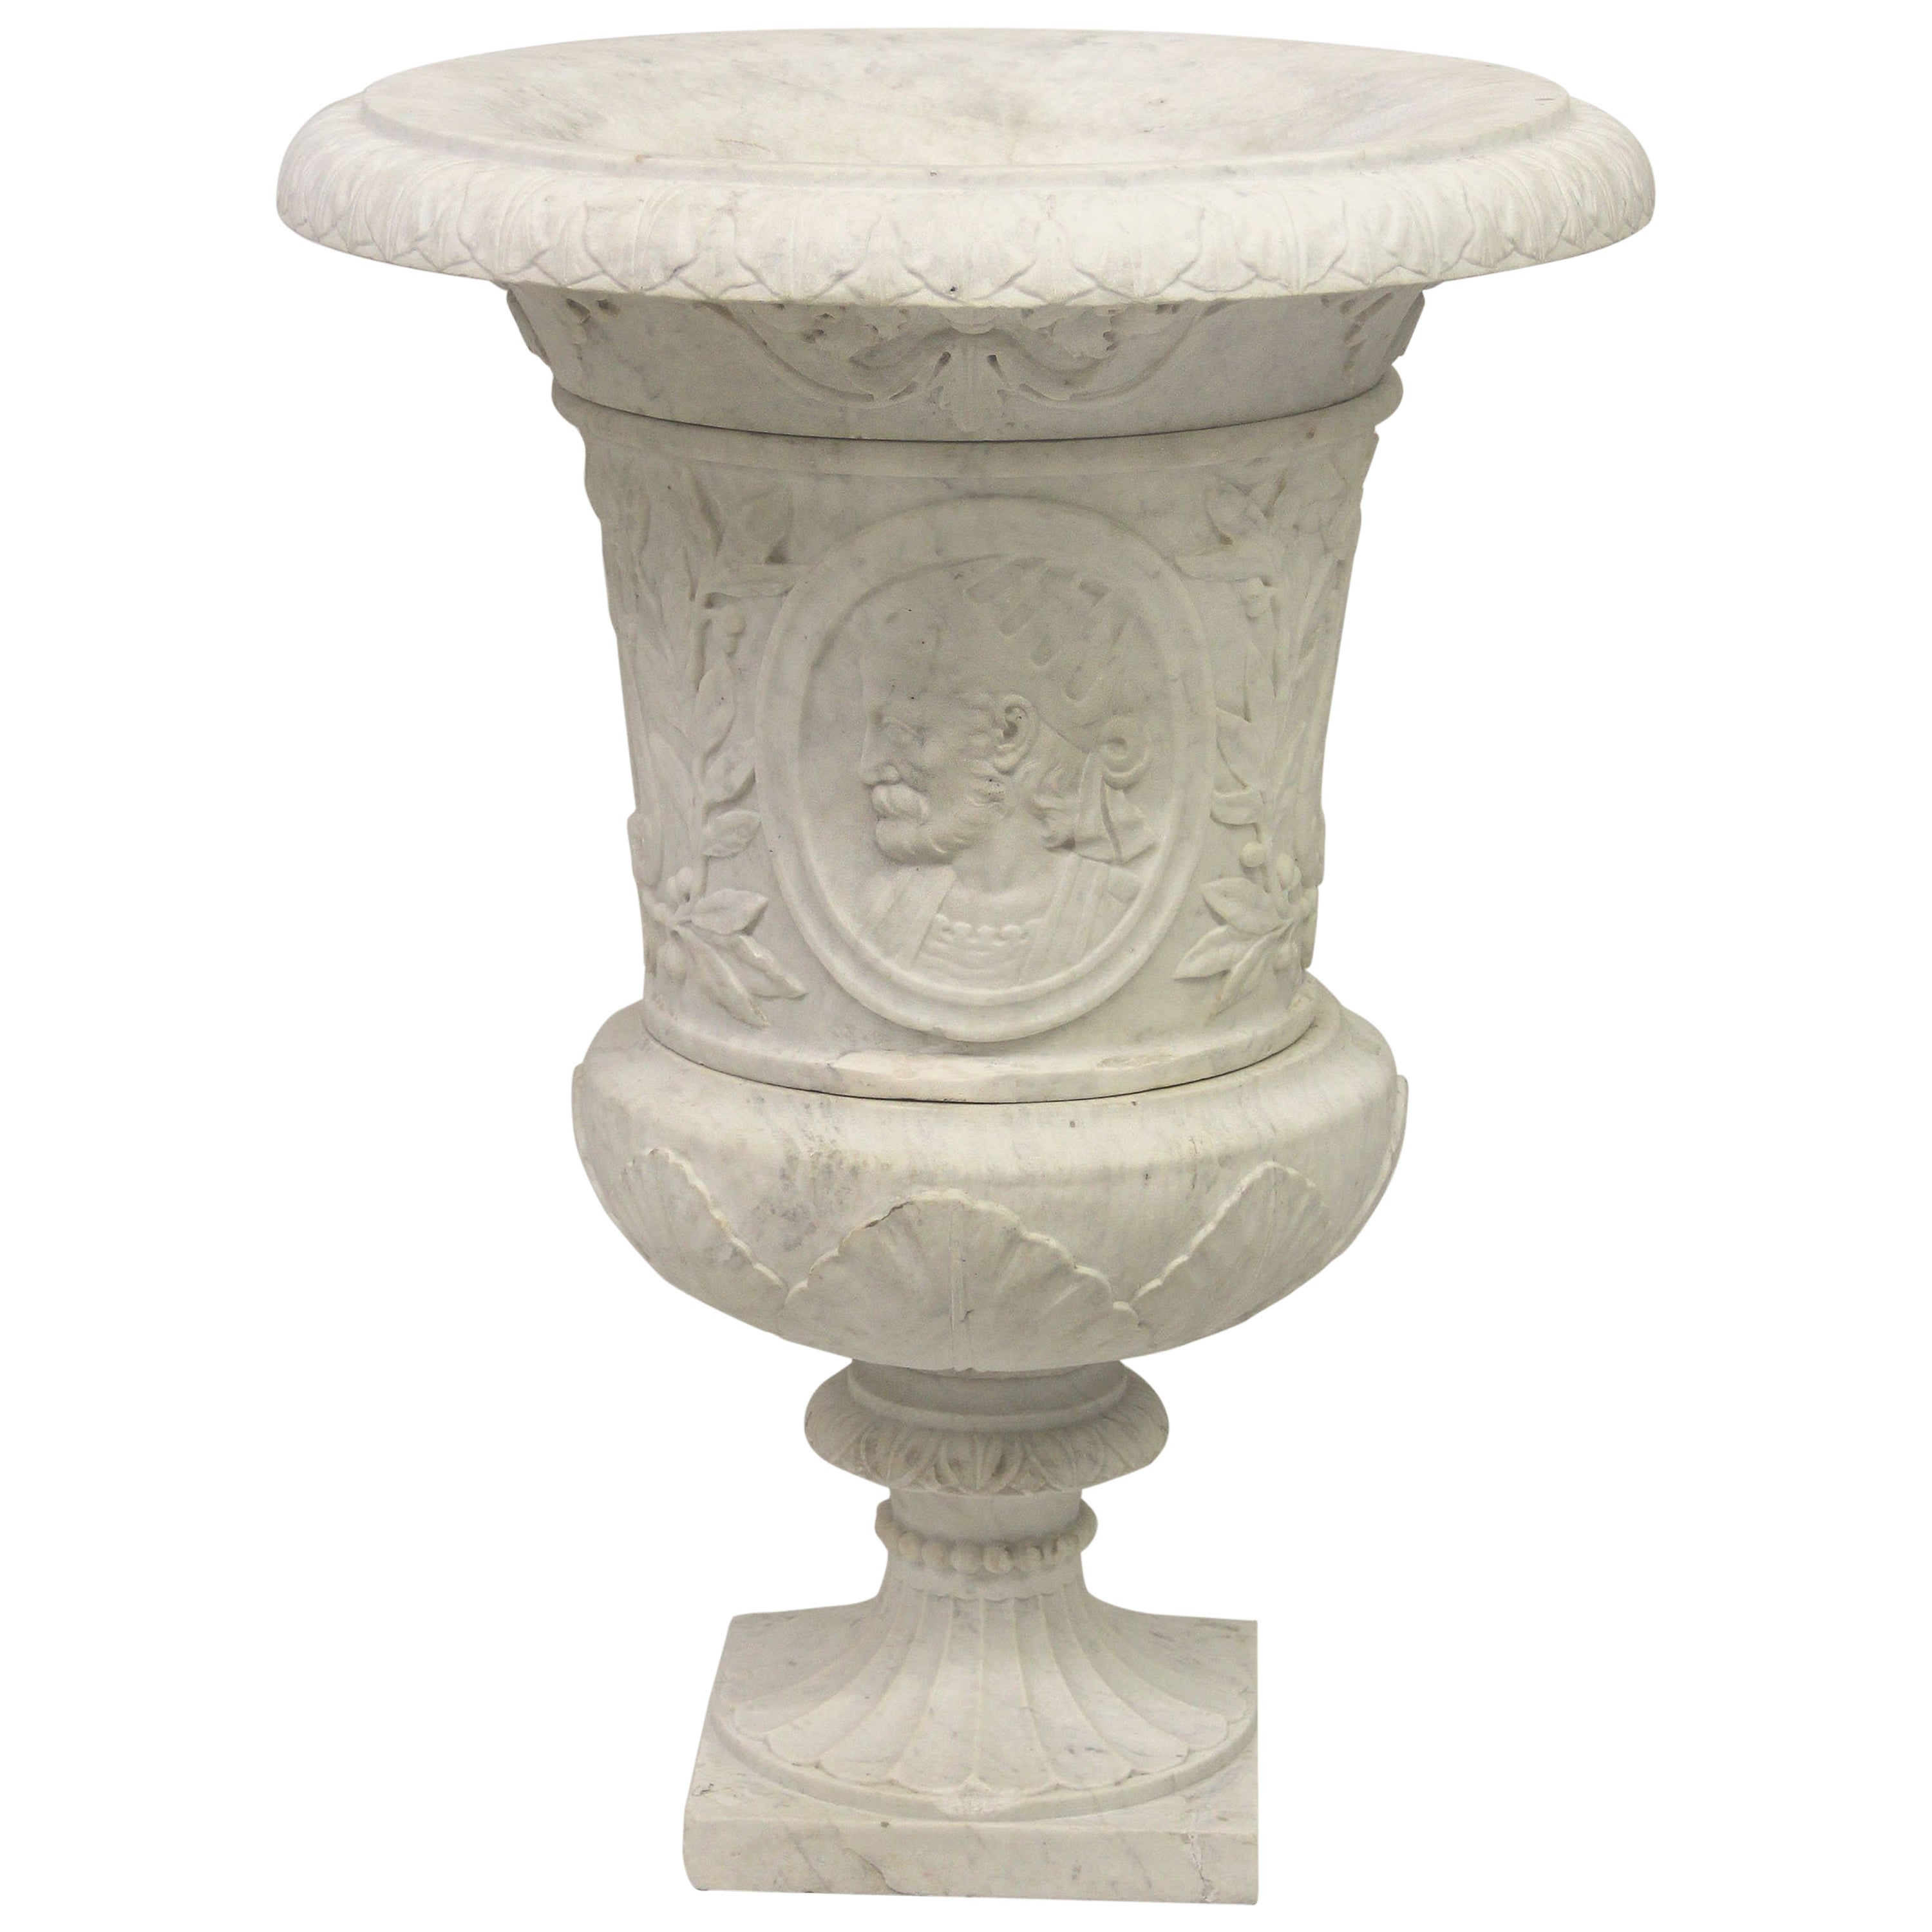 Very Fine Late 19th Century Hand-Carved Carrera Marble Urn